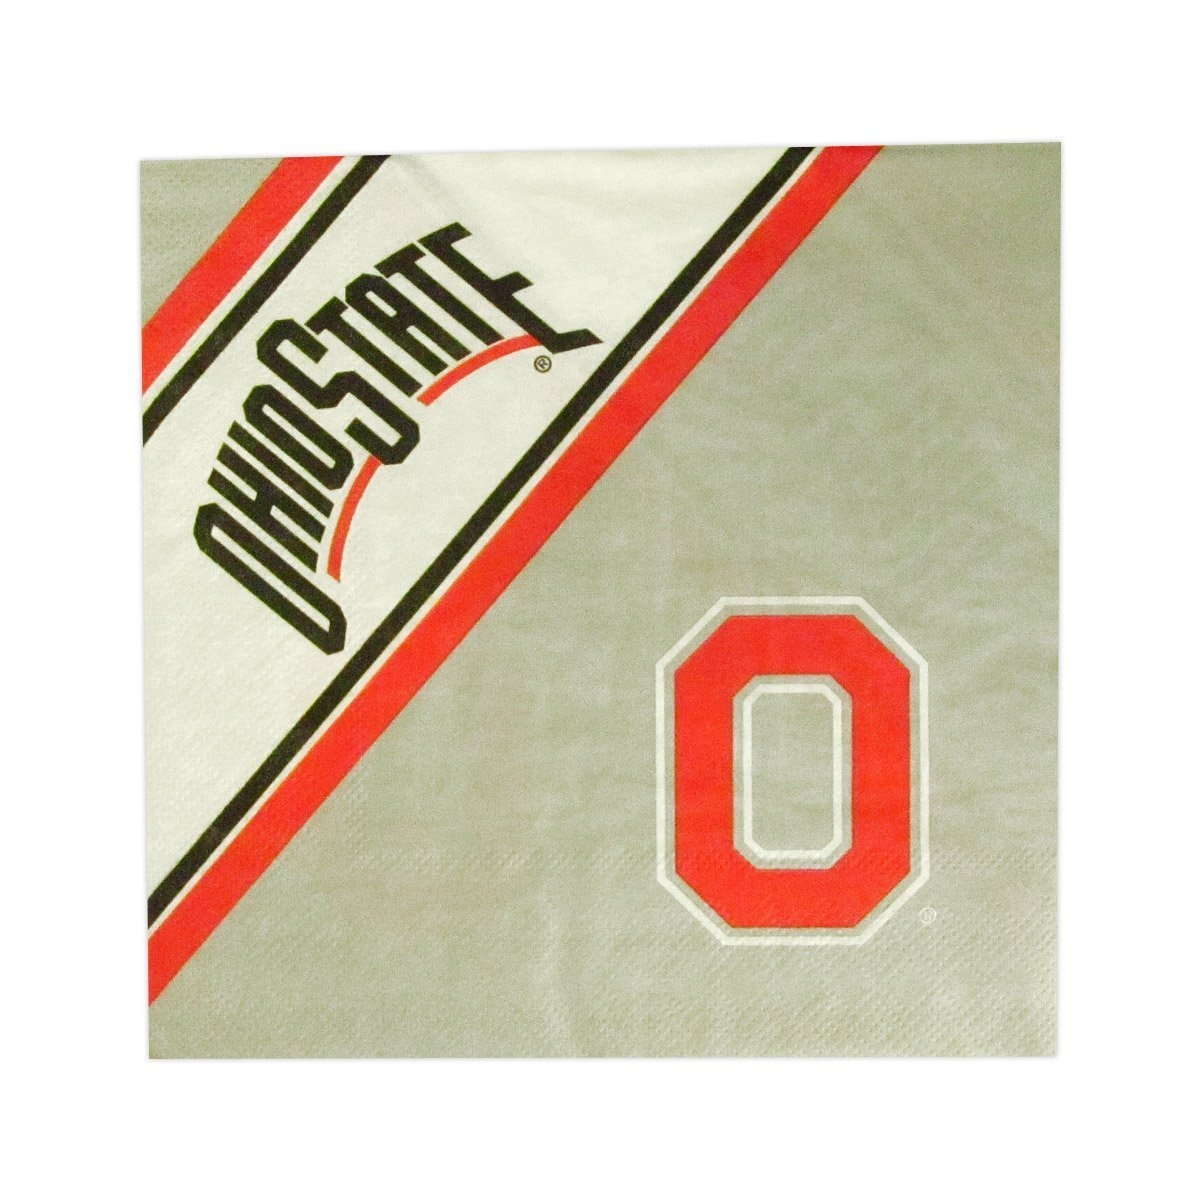 Collegiate Sports Ncaa College Ohio State Osu Buckeyes Bath - 9413107003 - Ohio State Buckeyes Disposable Napkins 9413107003